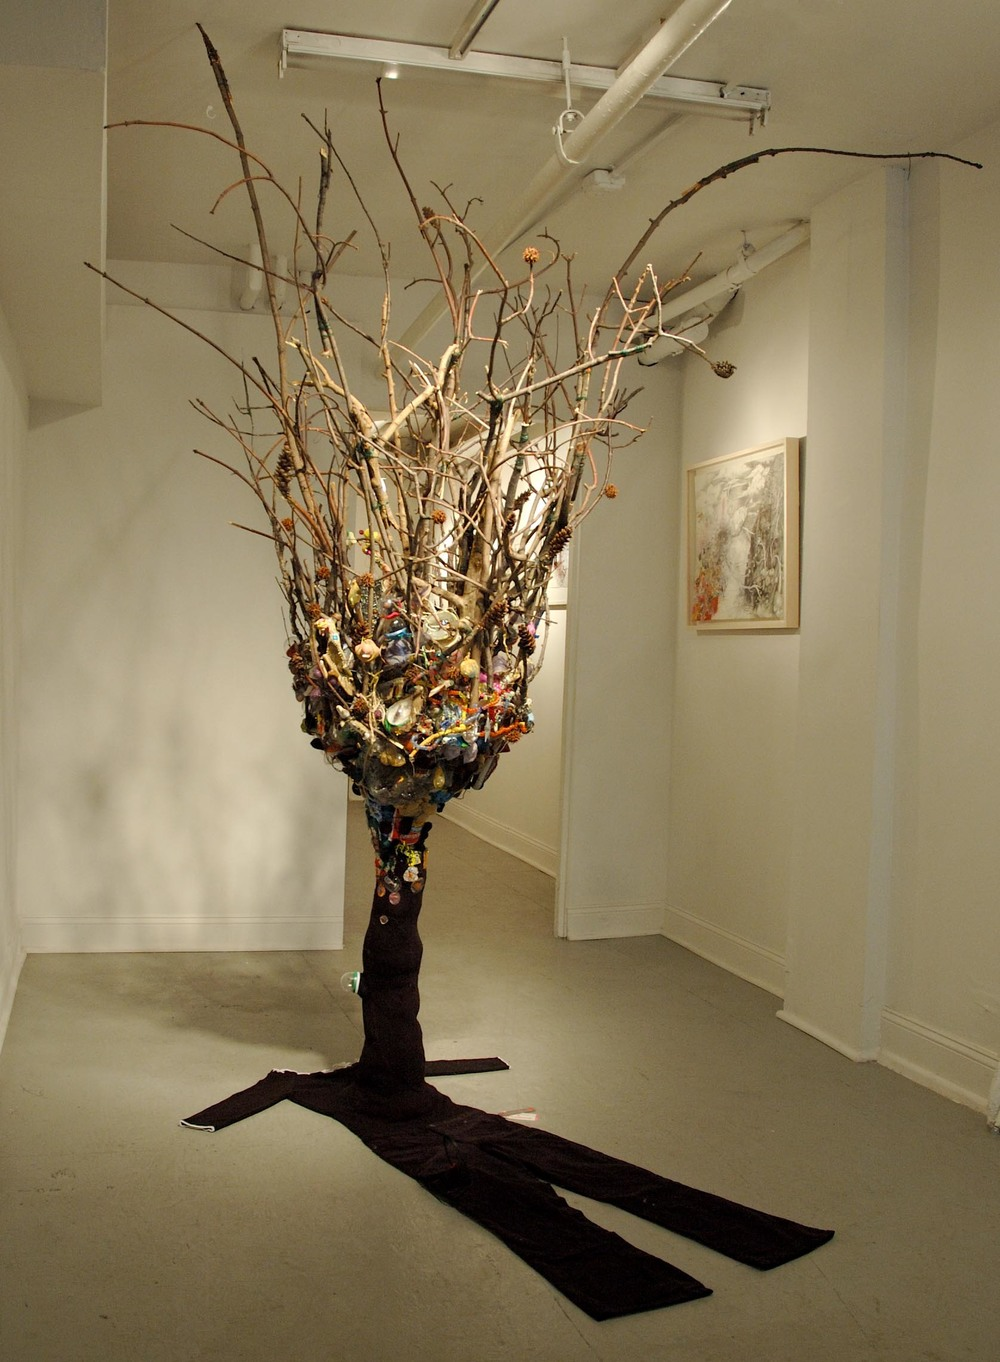 Trying Not To Die ,  2009.  Installed at Heskin Contemporary, NYC. Clothing, twigs, insects, trash, thread, fabric, wire. Variable Dimensions (clothing fits a 5' tall woman).